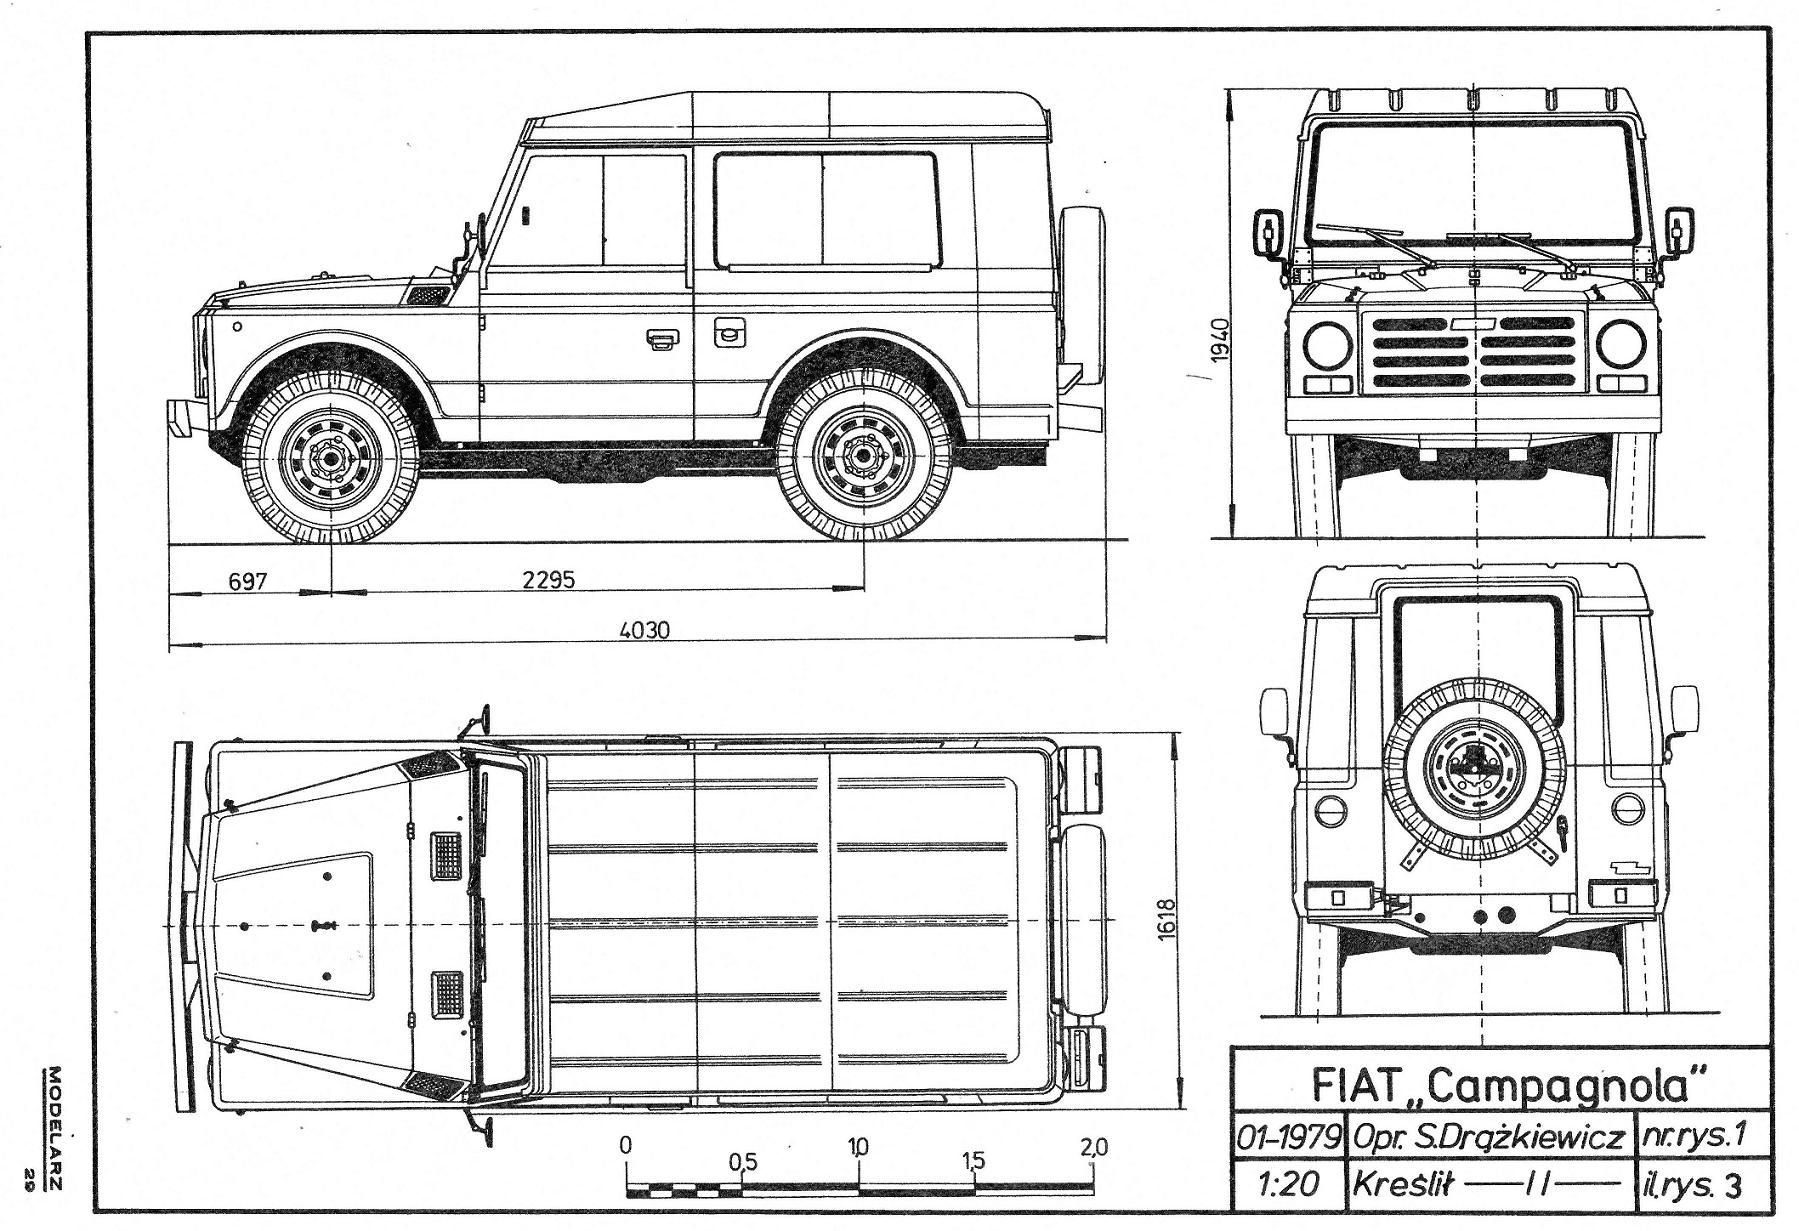 Fiat Campagnola Rc Cars Cars Coloring Pages Car